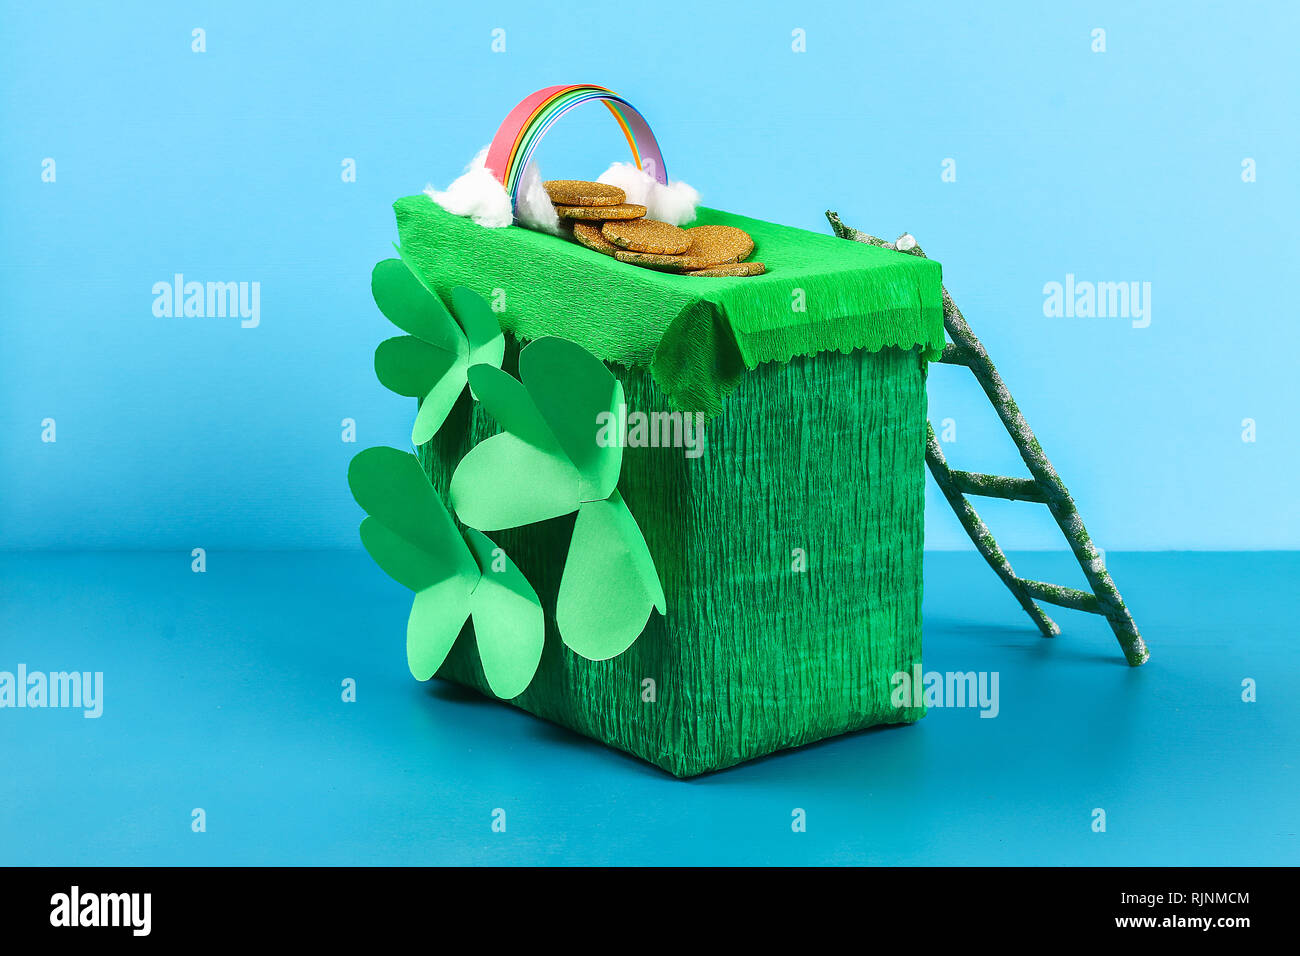 795b33862 DIY leprechaun trap with gold coins, rainbow and green ladder St Patricks  Day background. Gift Idea, decor Saint Patricks Day. Step by step. Child kid